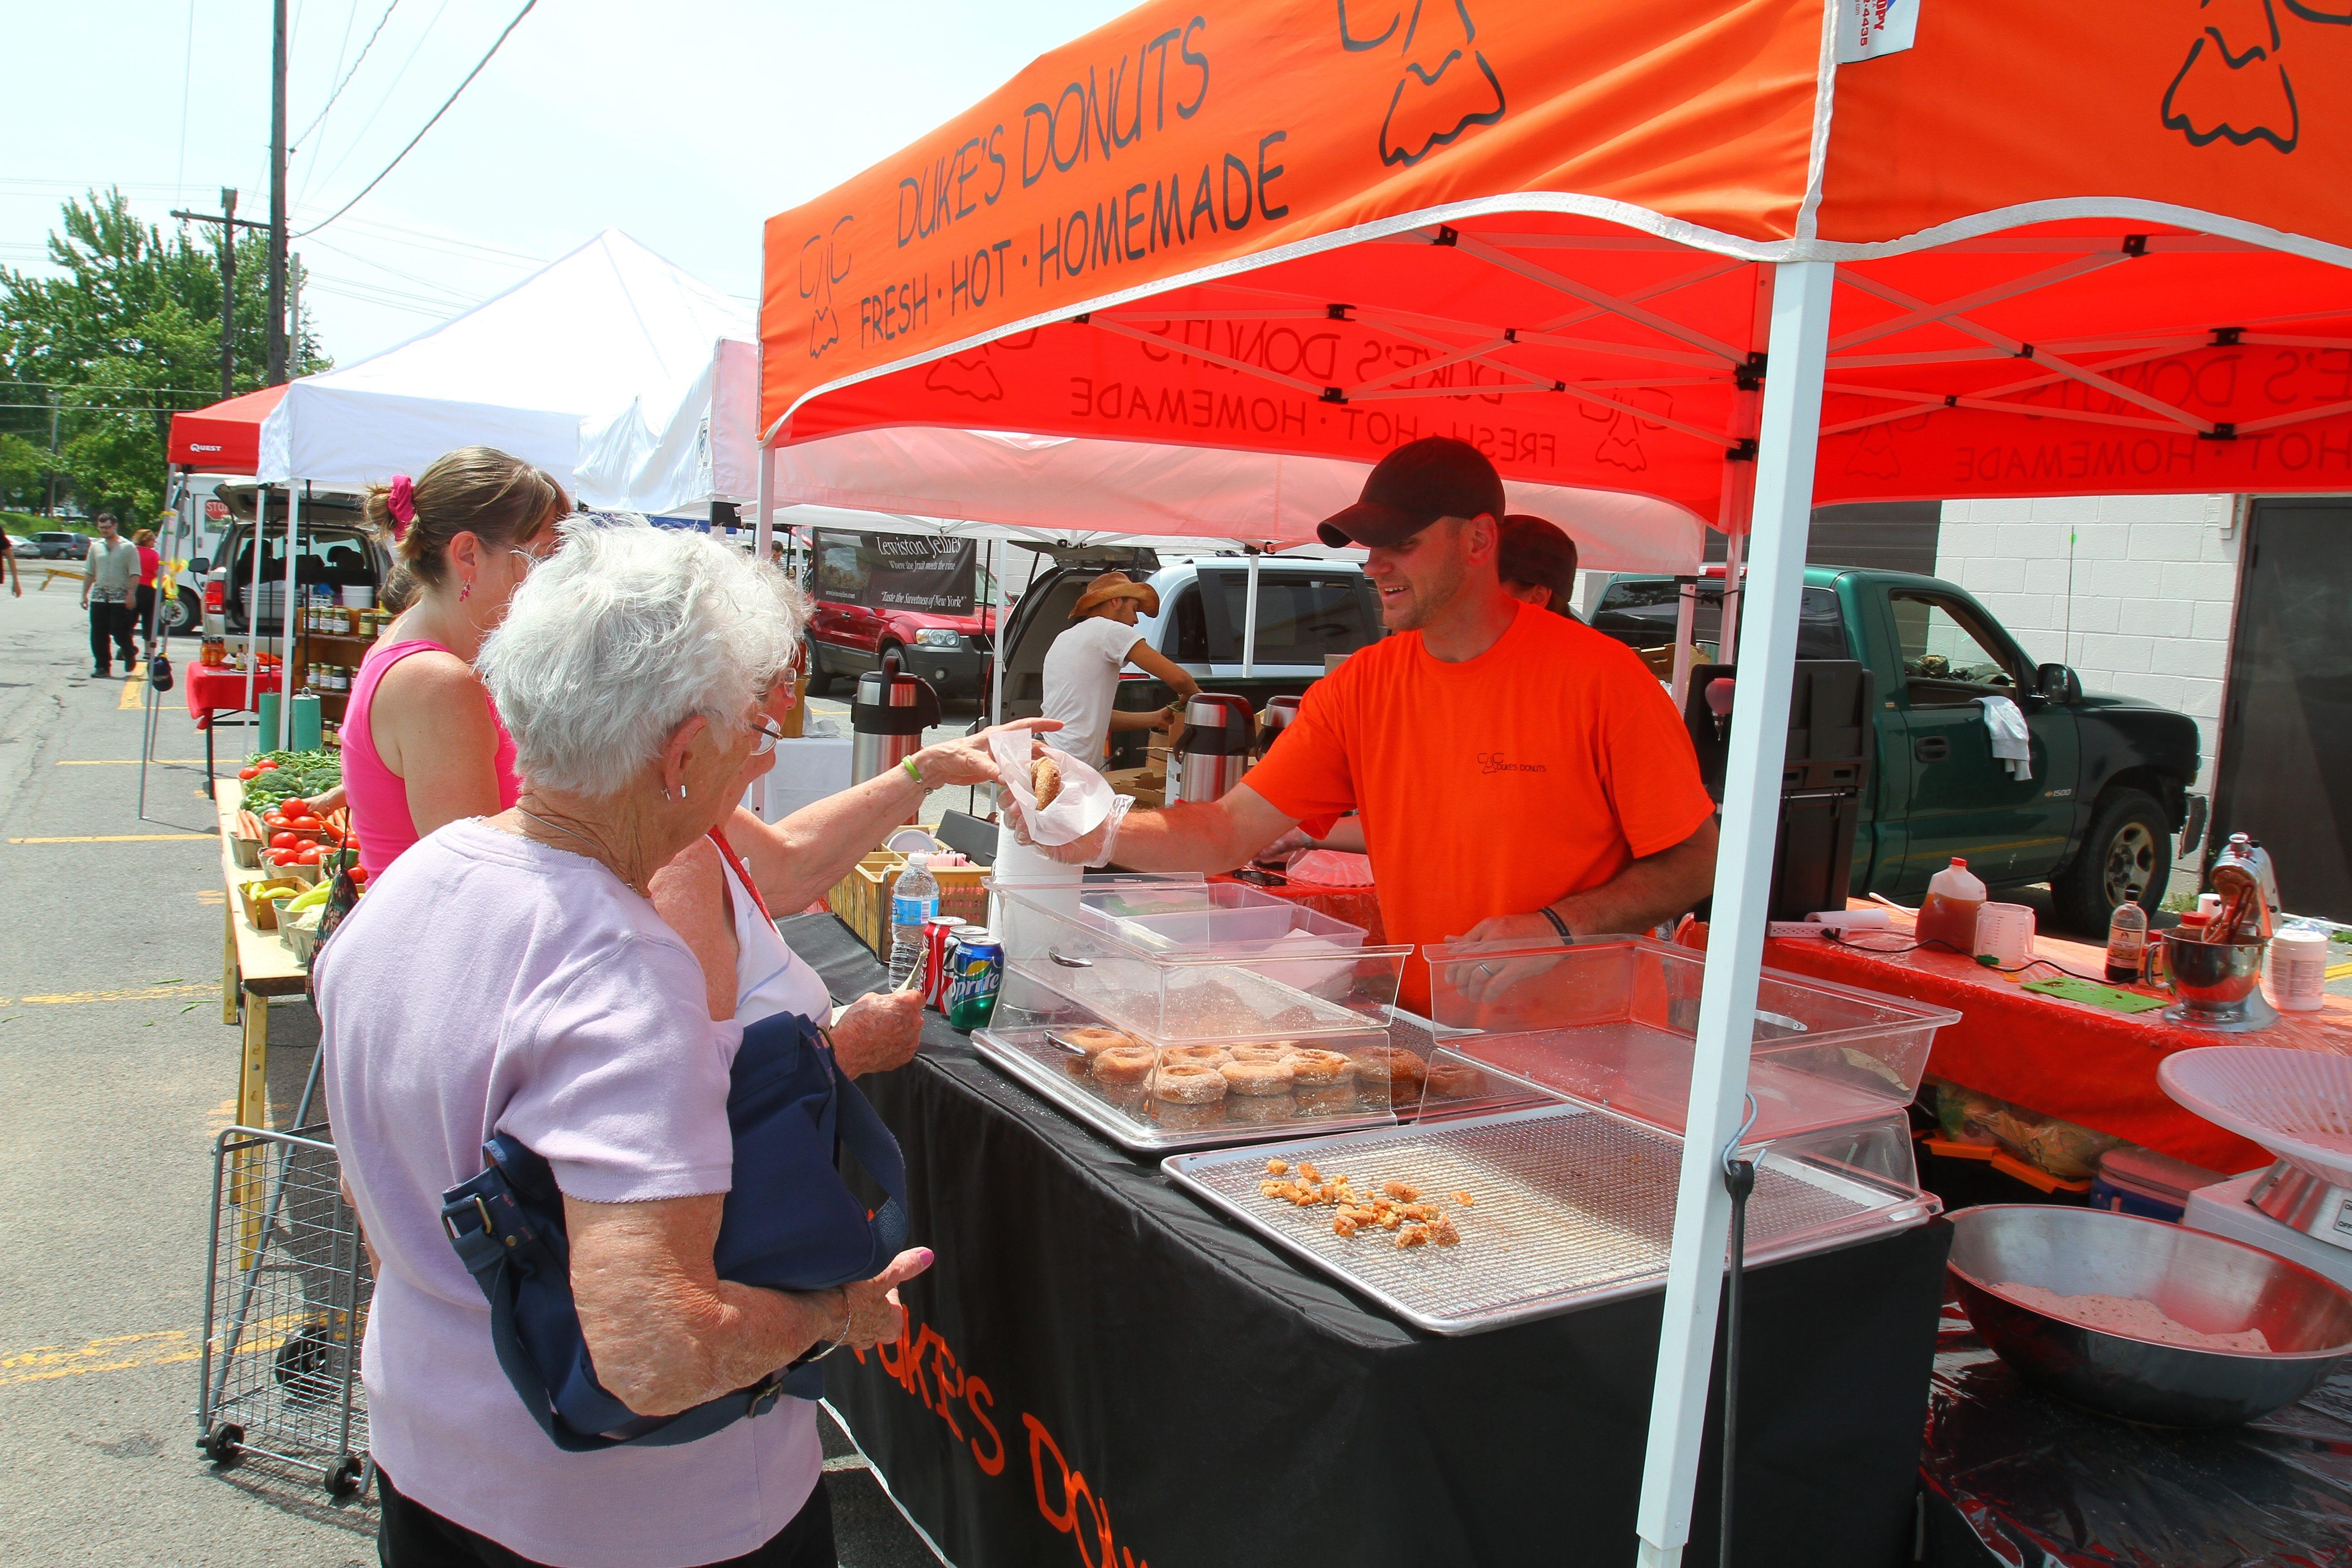 Chad Coyle, co-owner of Duke's Donuts, sells a doughnut to a customer at the Farmers' Market in North Tonawanda on Saturday. Today's farmers' markets don't sell just produce and plants.